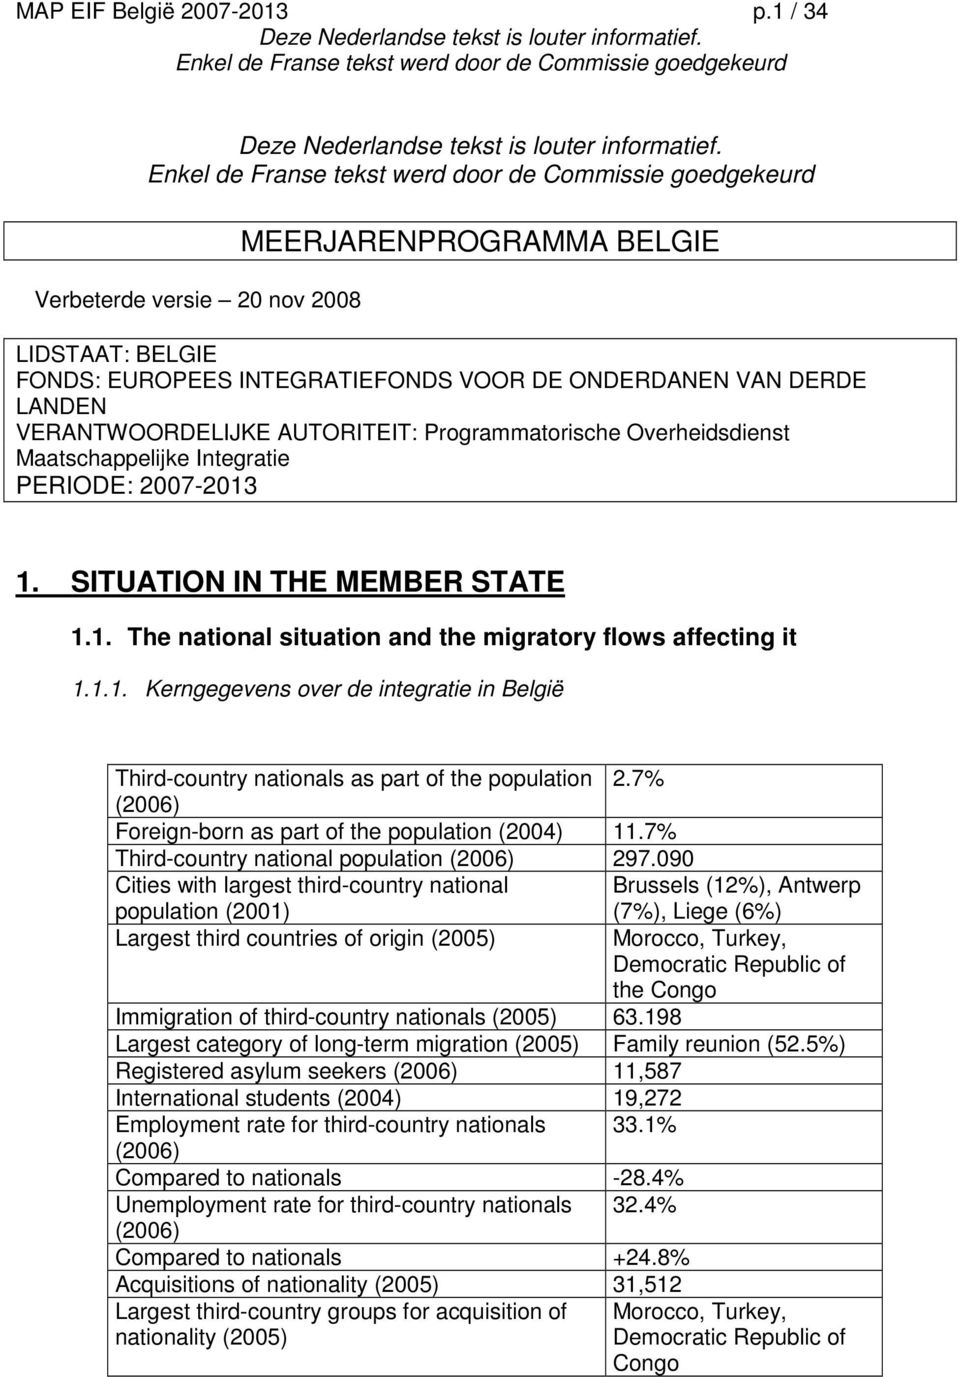 Overheidsdienst Maatschappelijke Integratie PERIODE: 2007-2013 1. SITUATION IN THE MEMBER STATE 1.1. The national situation and the migratory flows affecting it 1.1.1. Kerngegevens over de integratie in België Third-country nationals as part of the population 2.